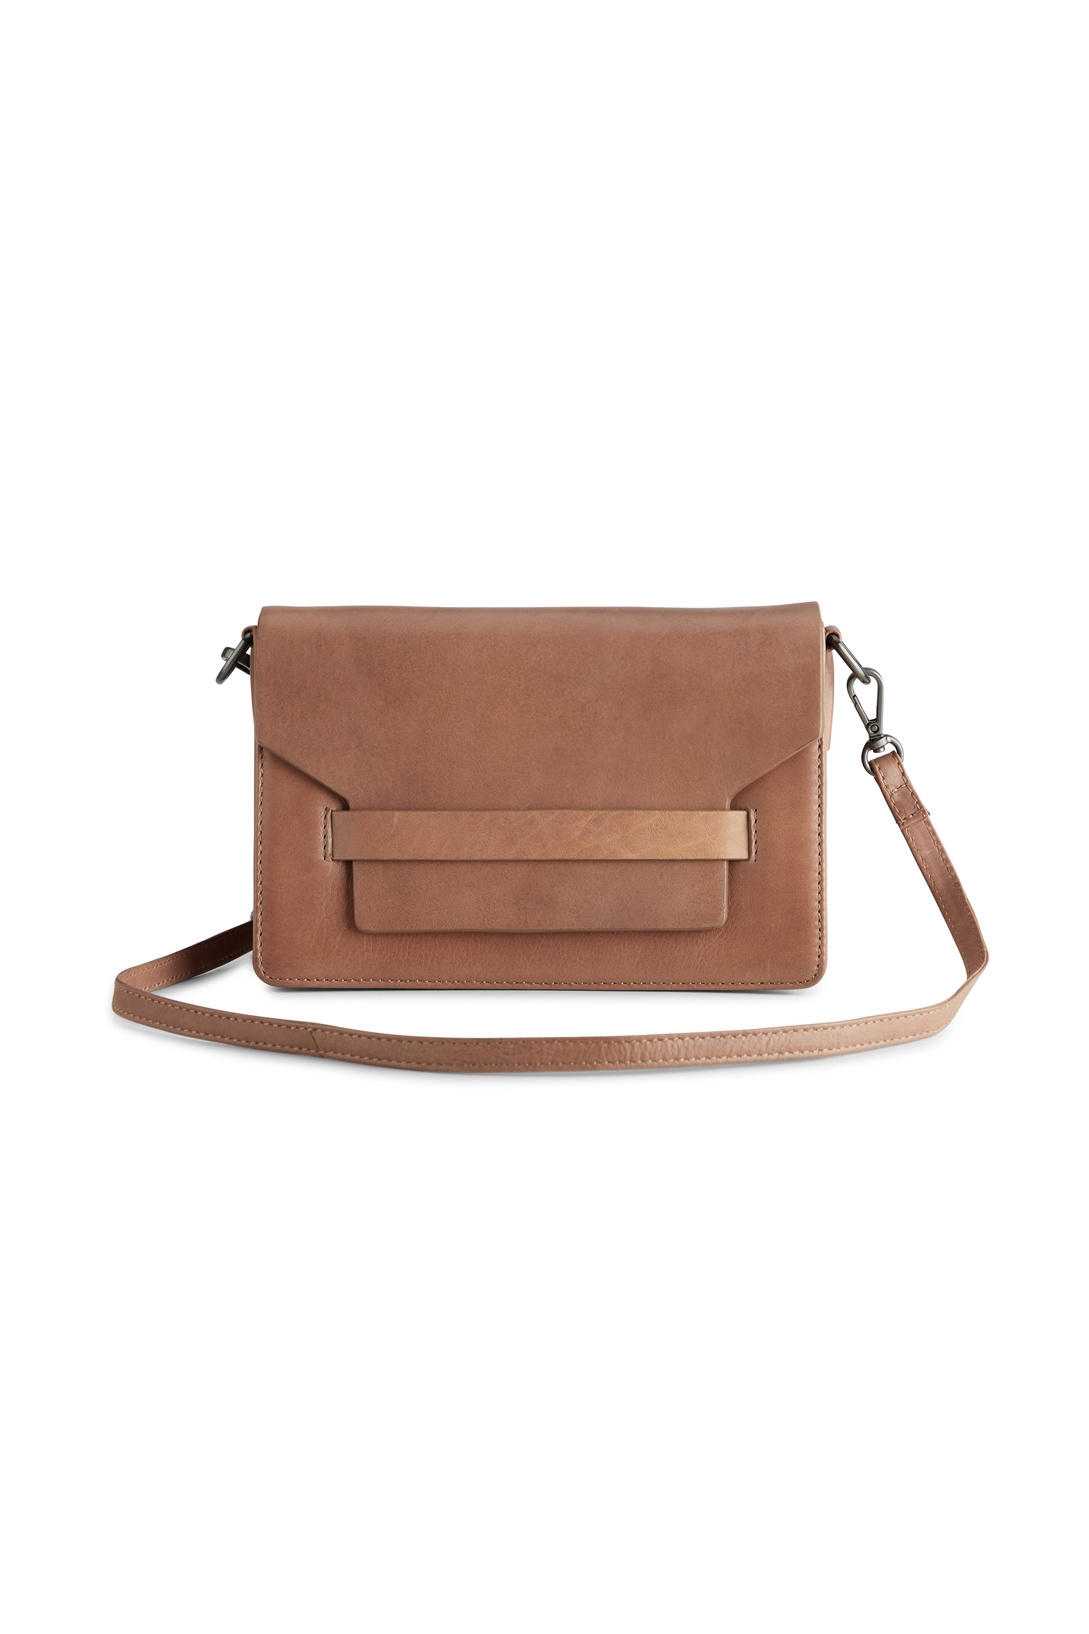 Arabella Crossbody Bag - Antique Caramel w/ Black-1